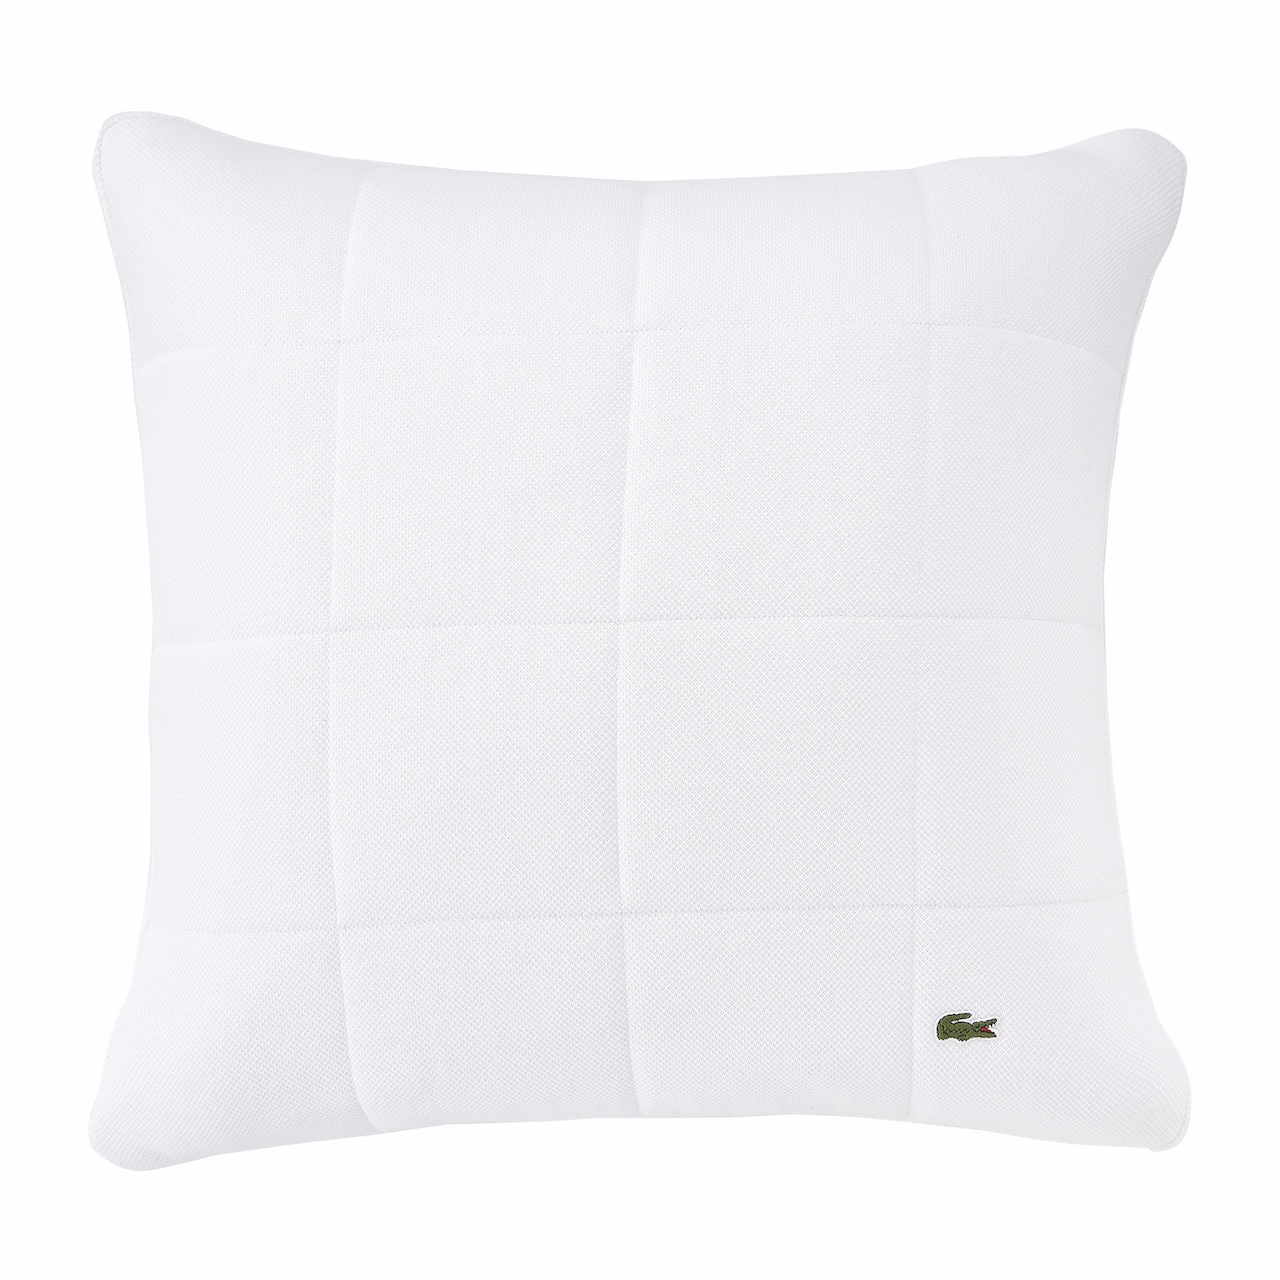 Quilted Pique Pillow